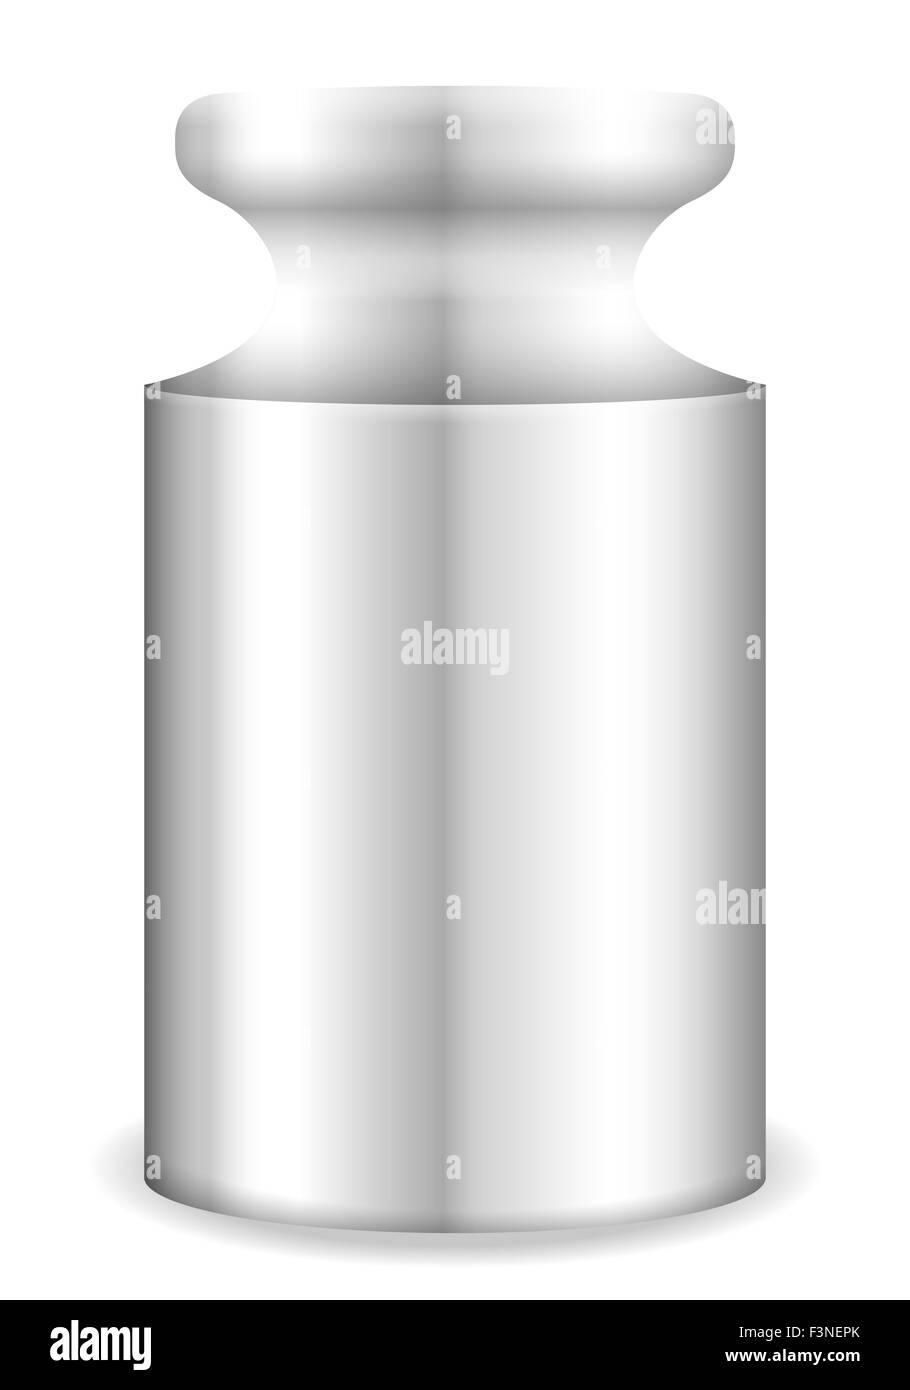 Calibration weight on a white background. Vector illustration. - Stock Image